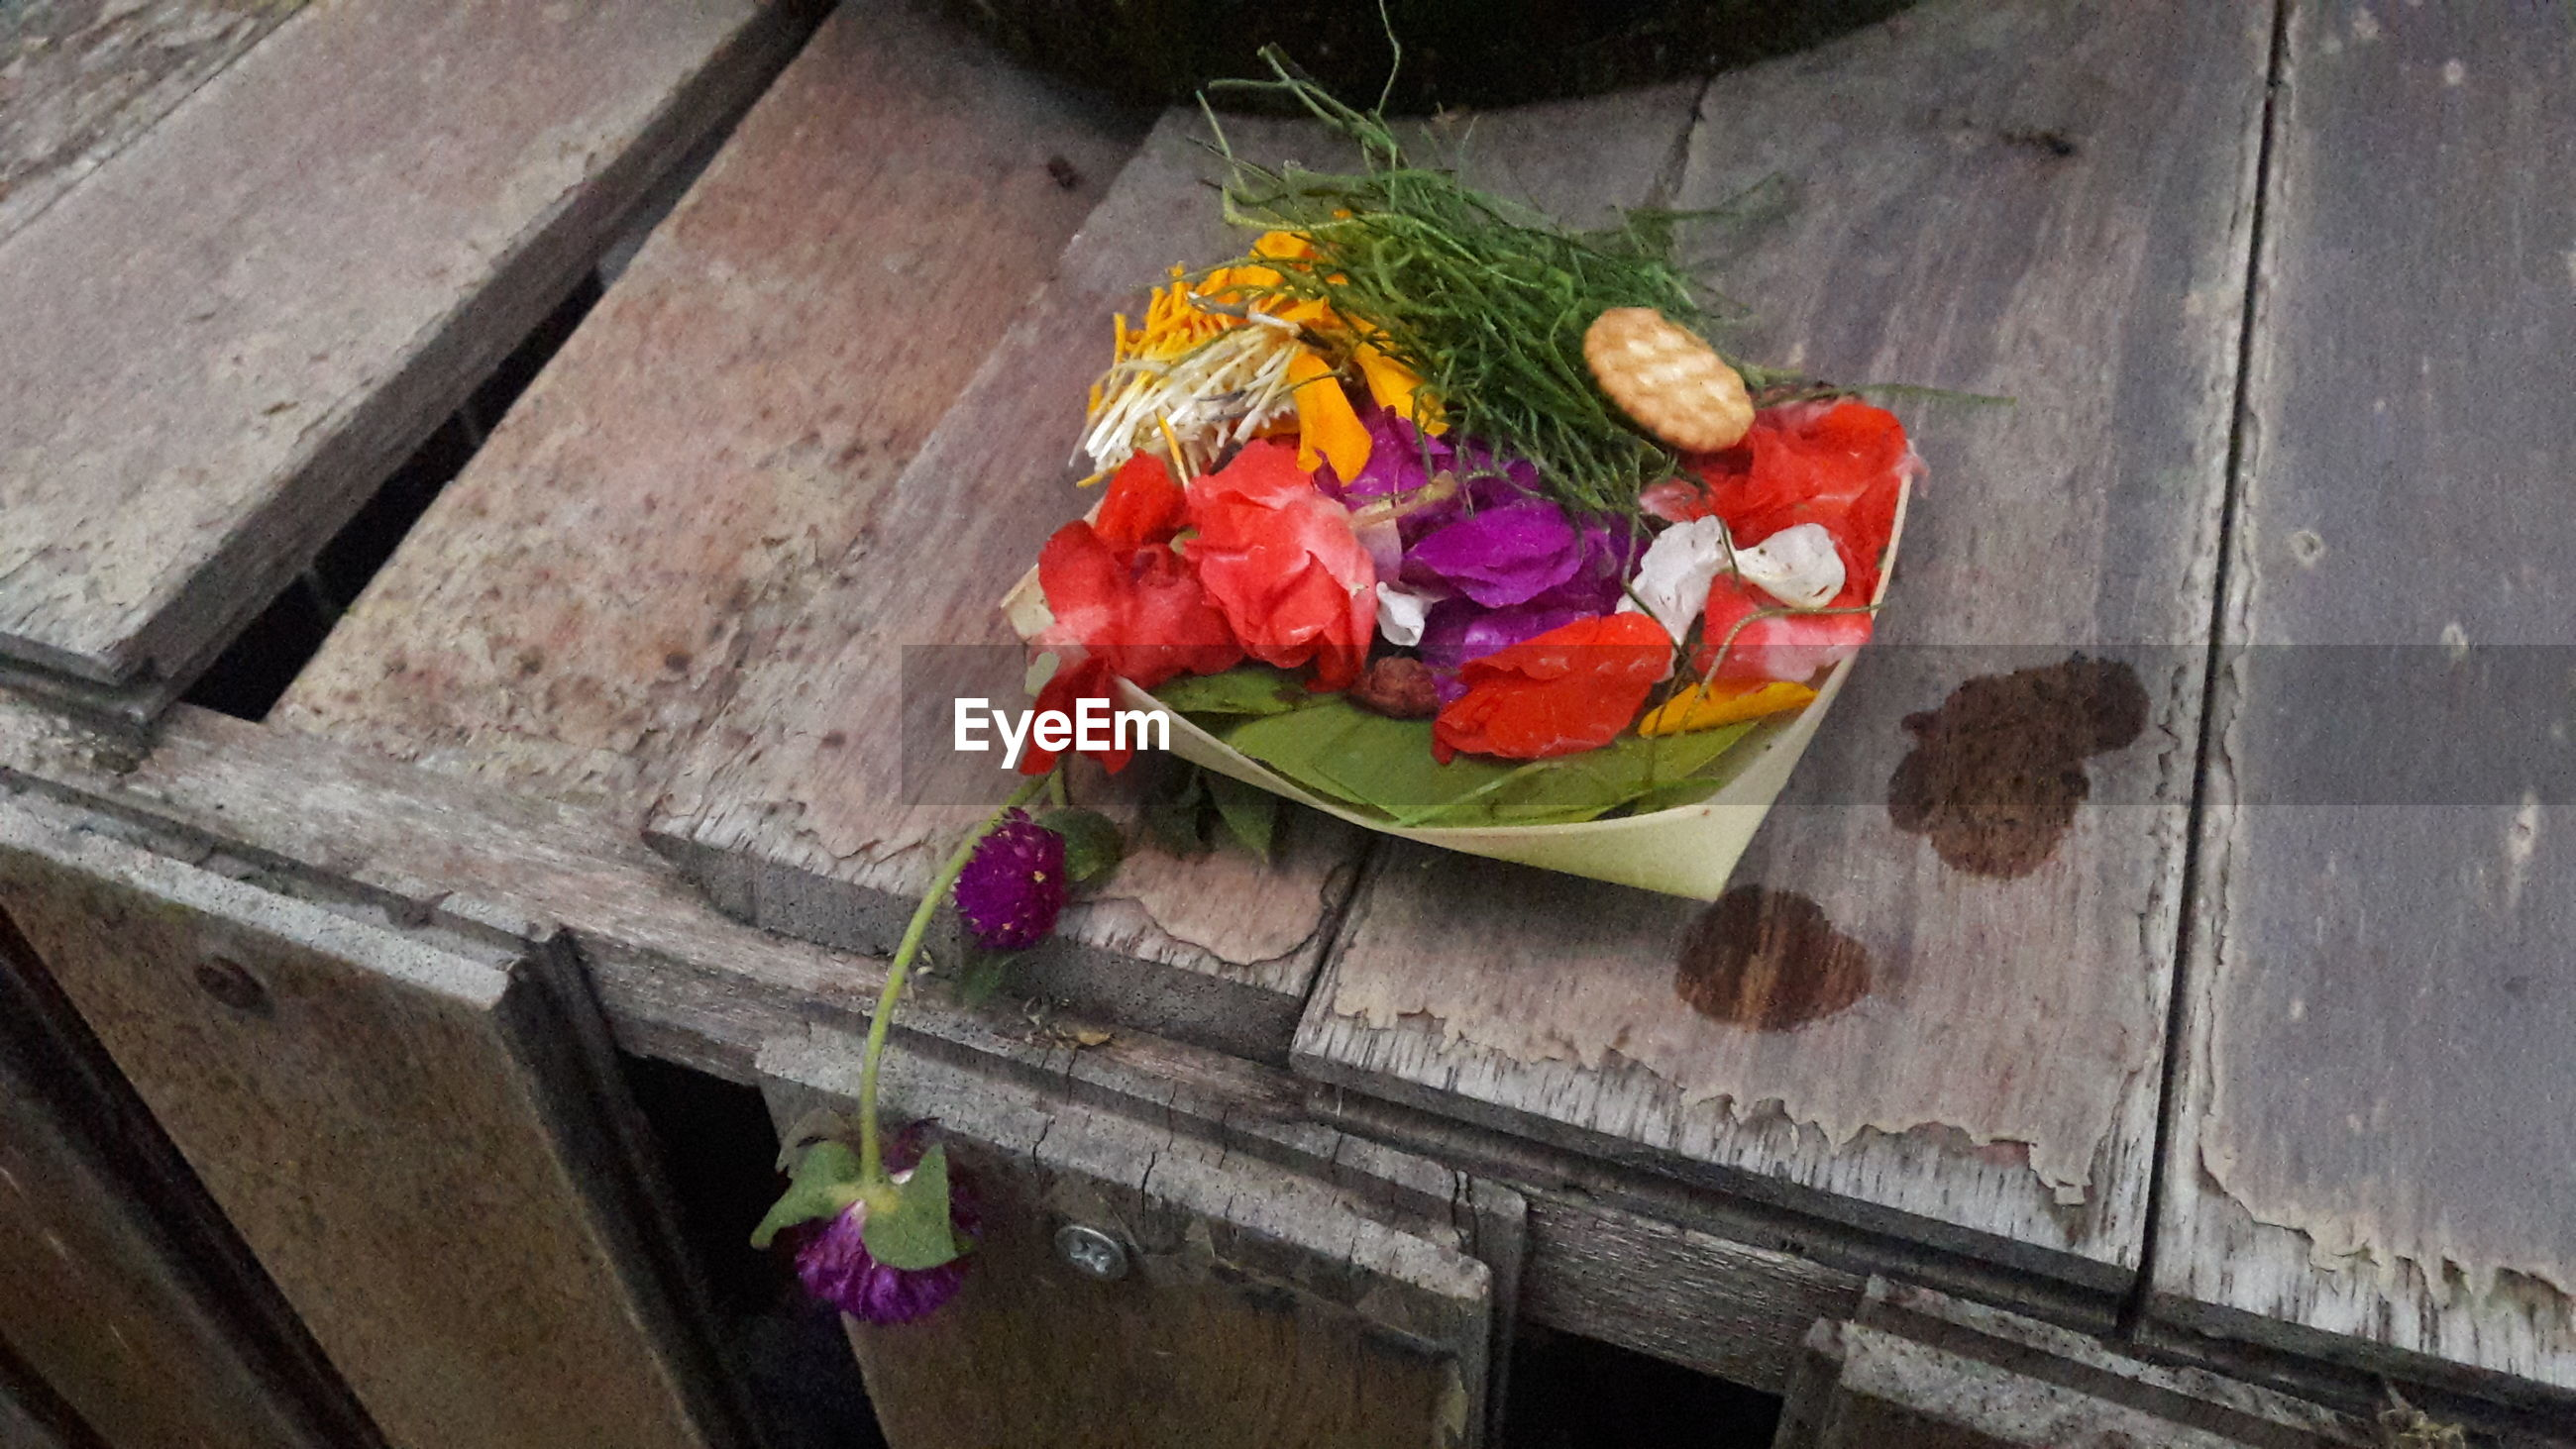 High angle view of religious offerings on wooden planks